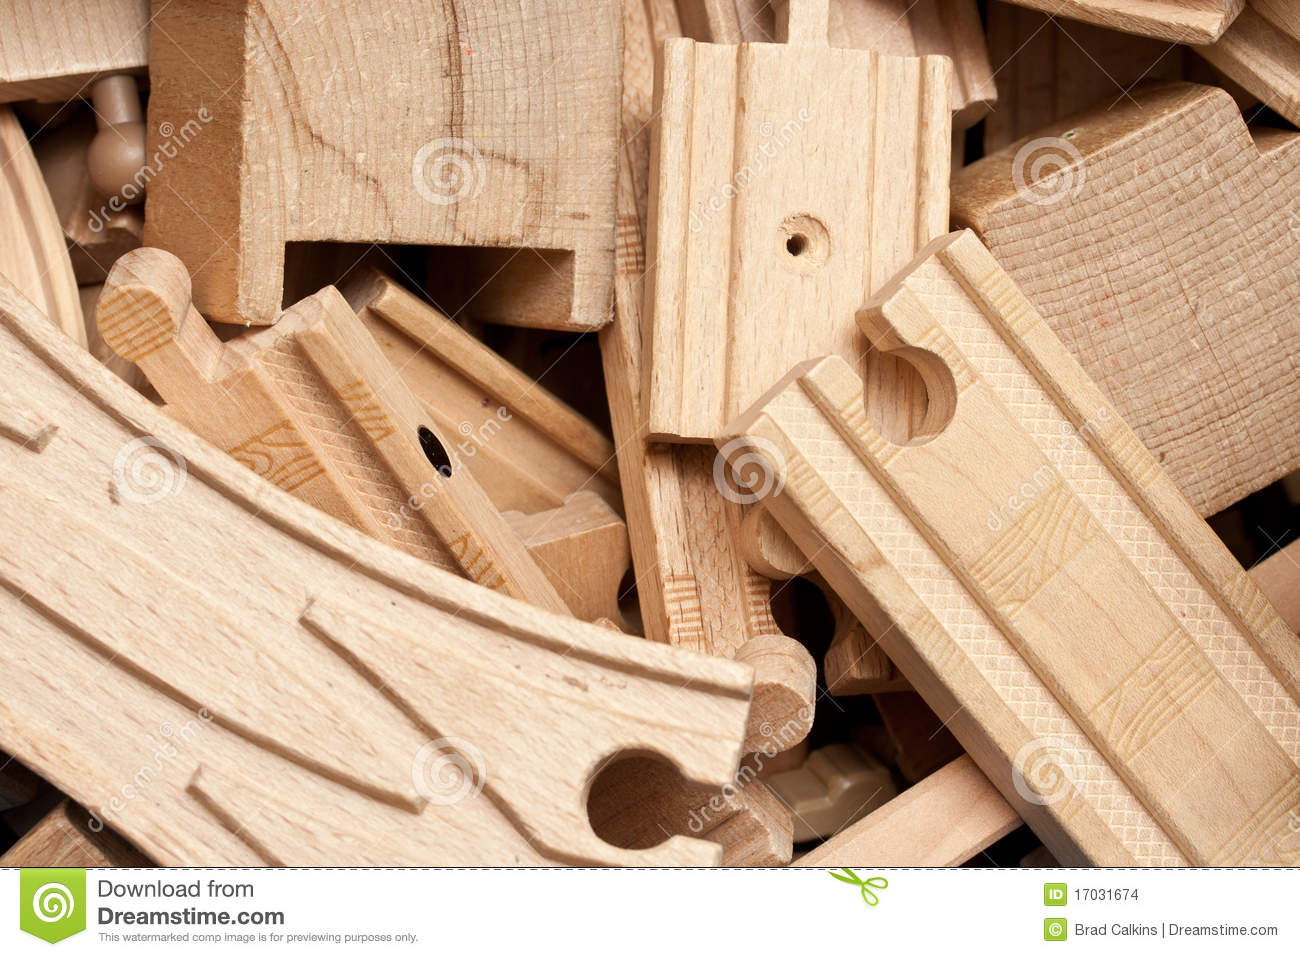 Wooden Train Tracks Stock Images - Image: 17031674